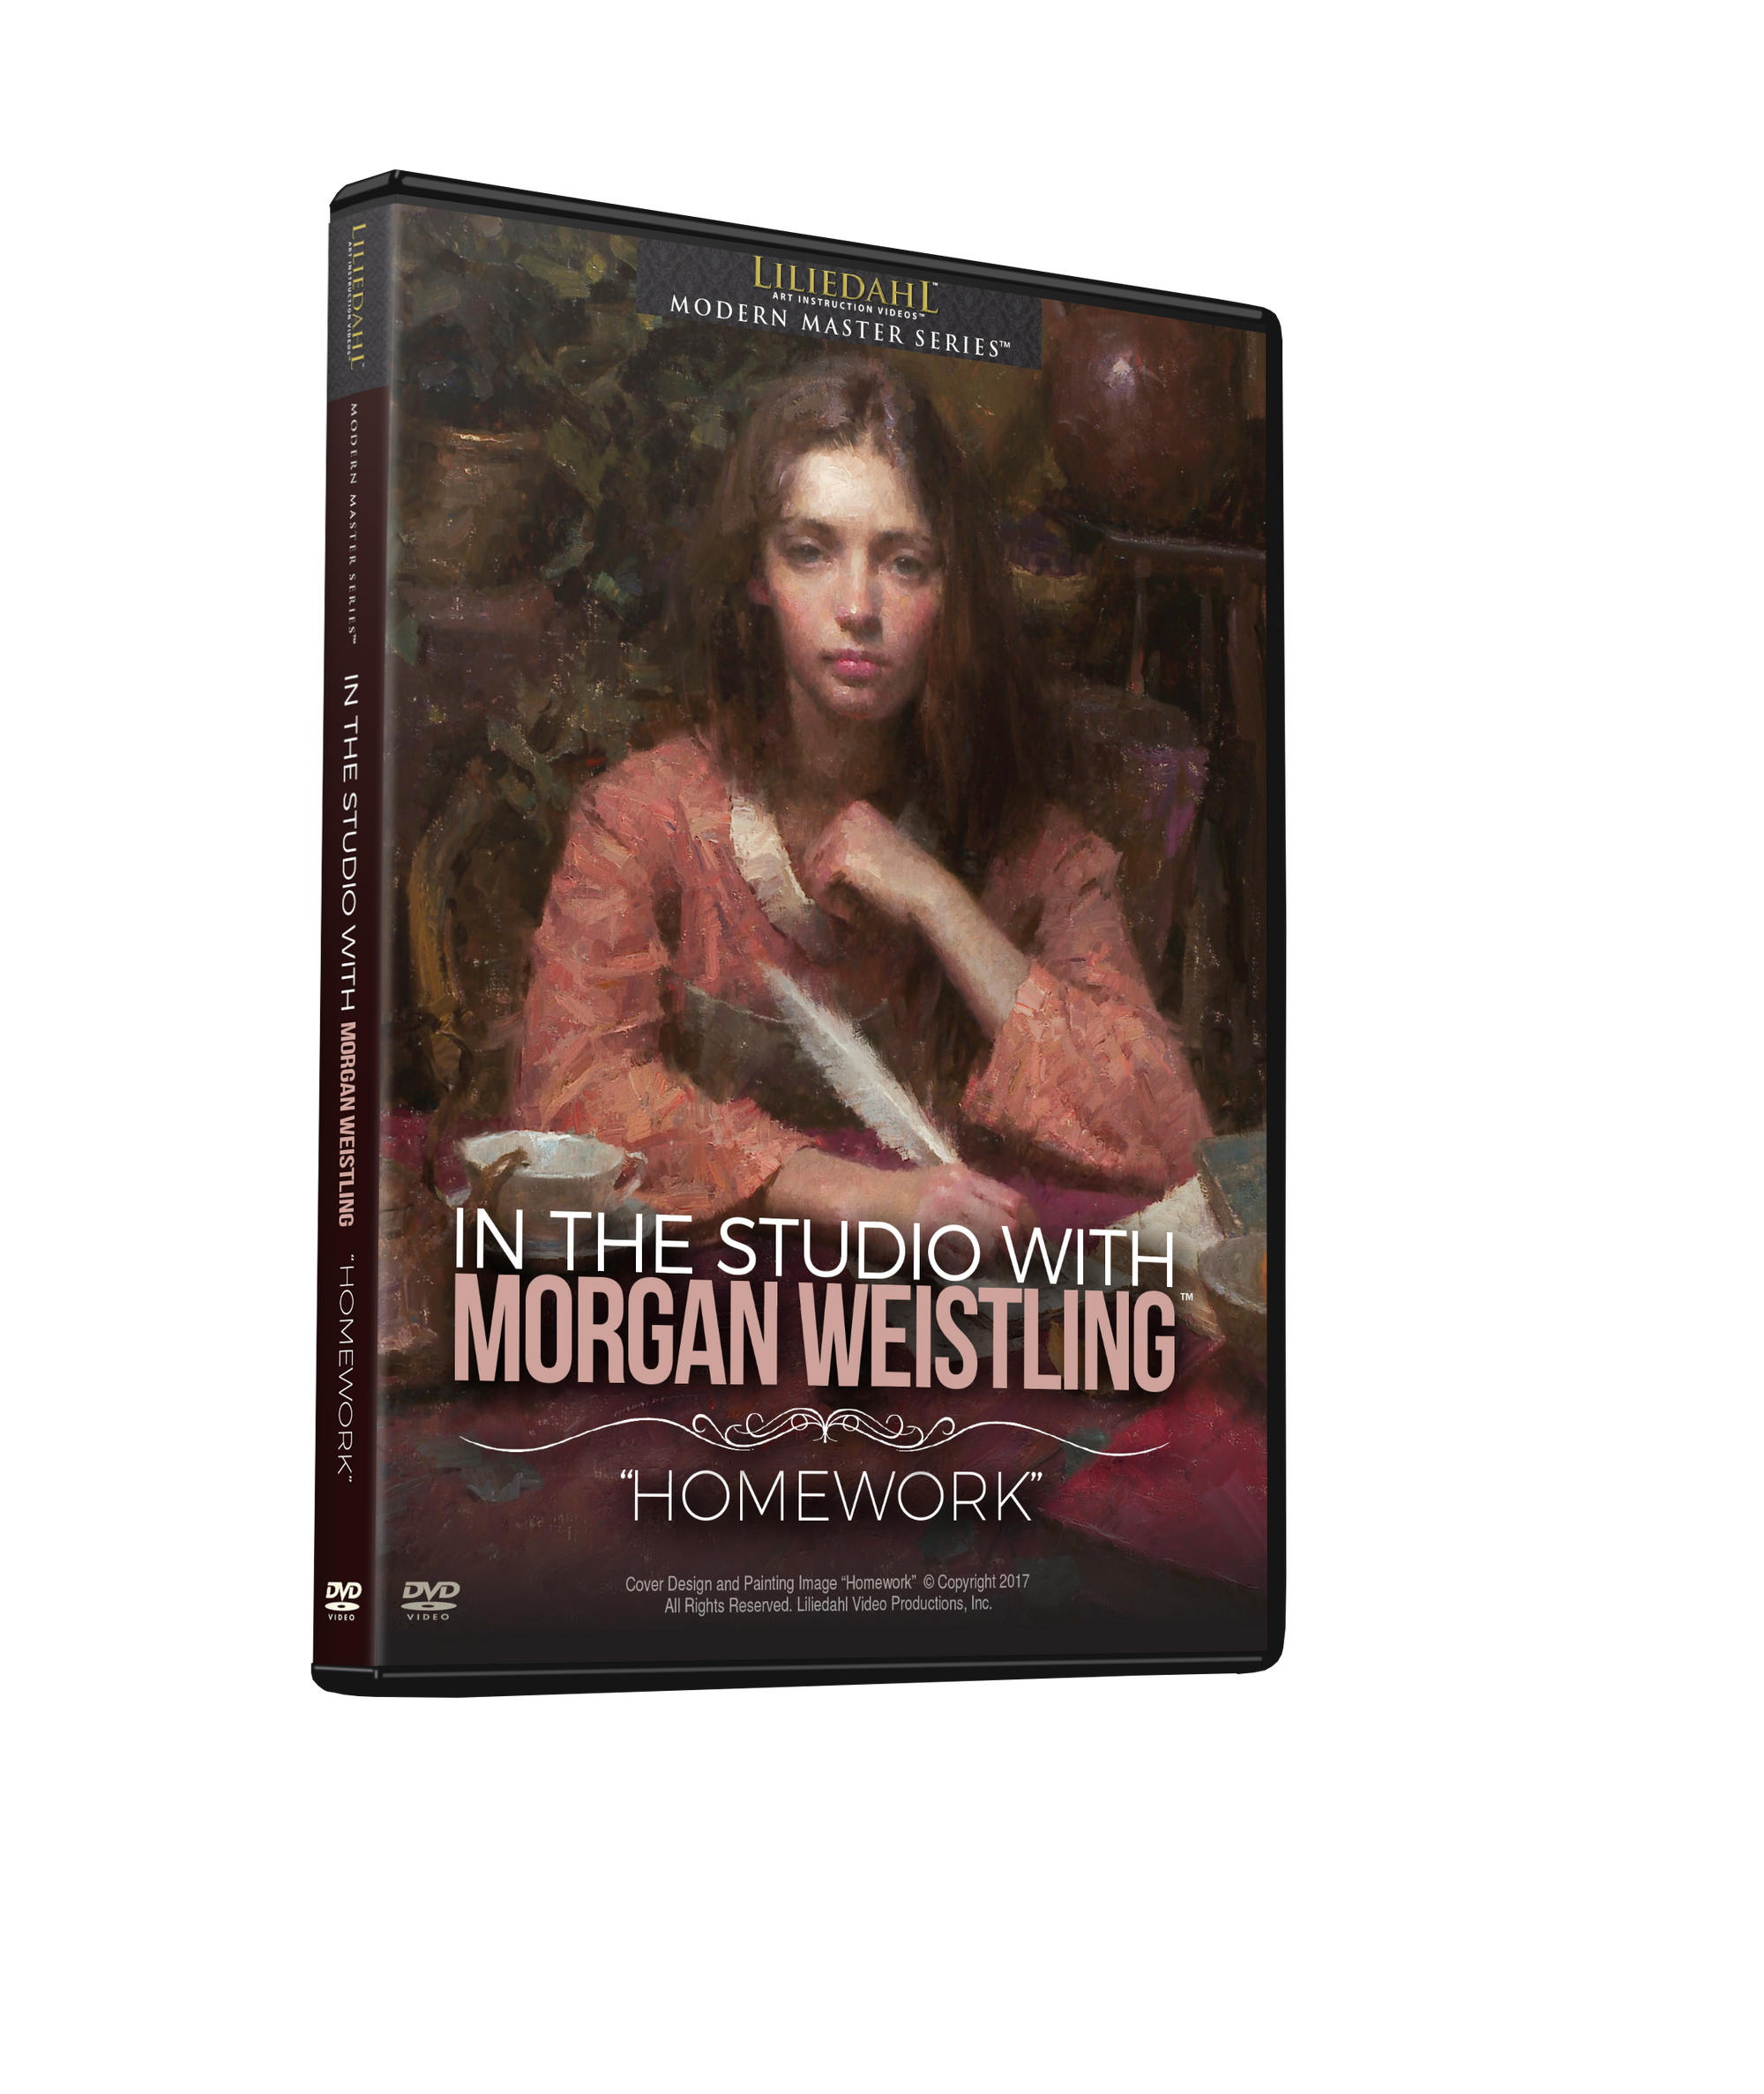 Morgan Weistling: Homework